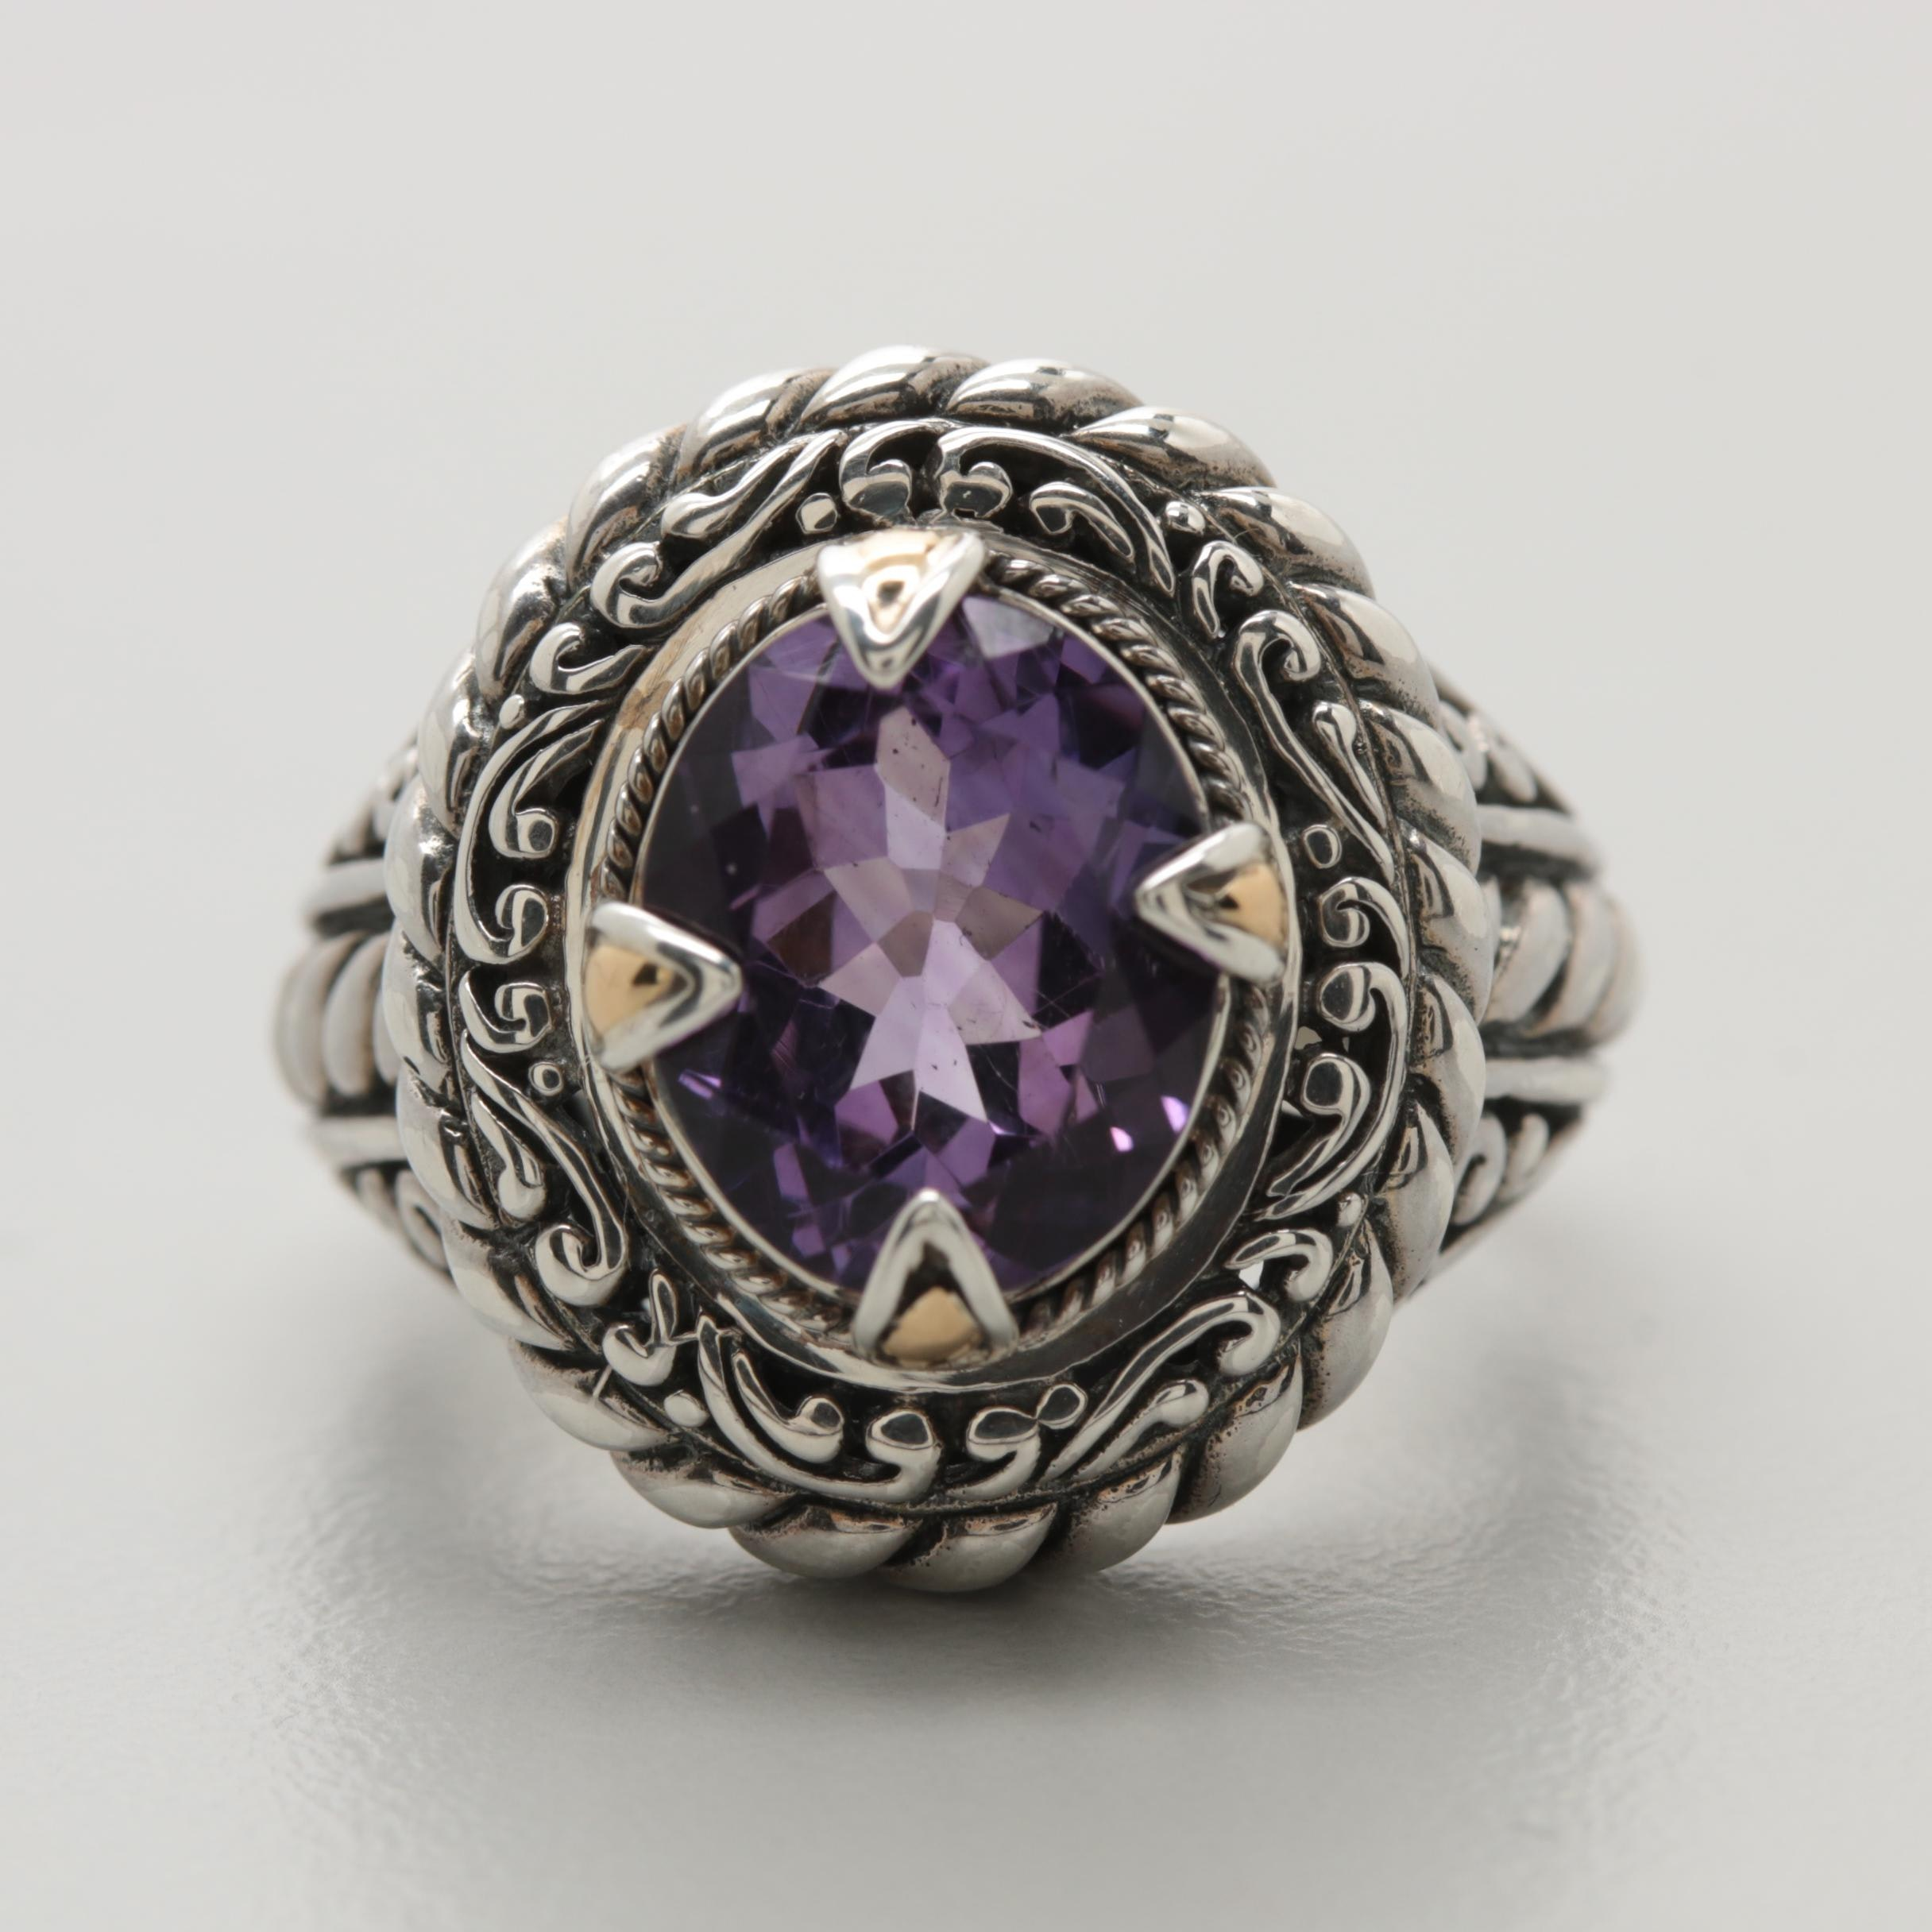 Robert Manse Sterling Silver Amethyst Ring with 18K Yellow Gold Accents